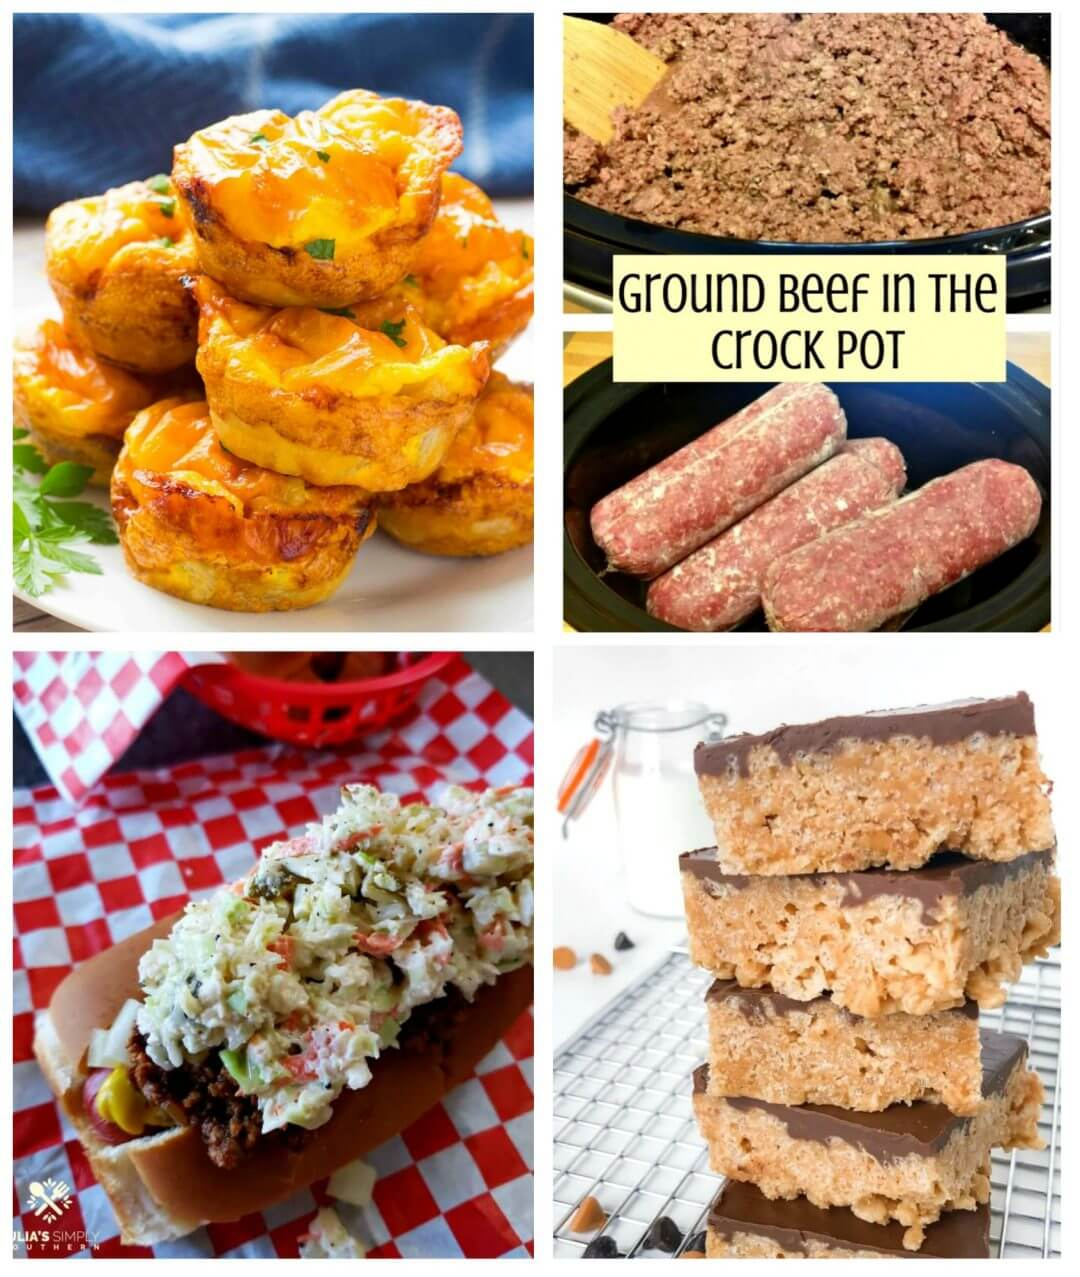 Meal Plan Monday 214 Crock Pot Ground Beef - Feature Collage